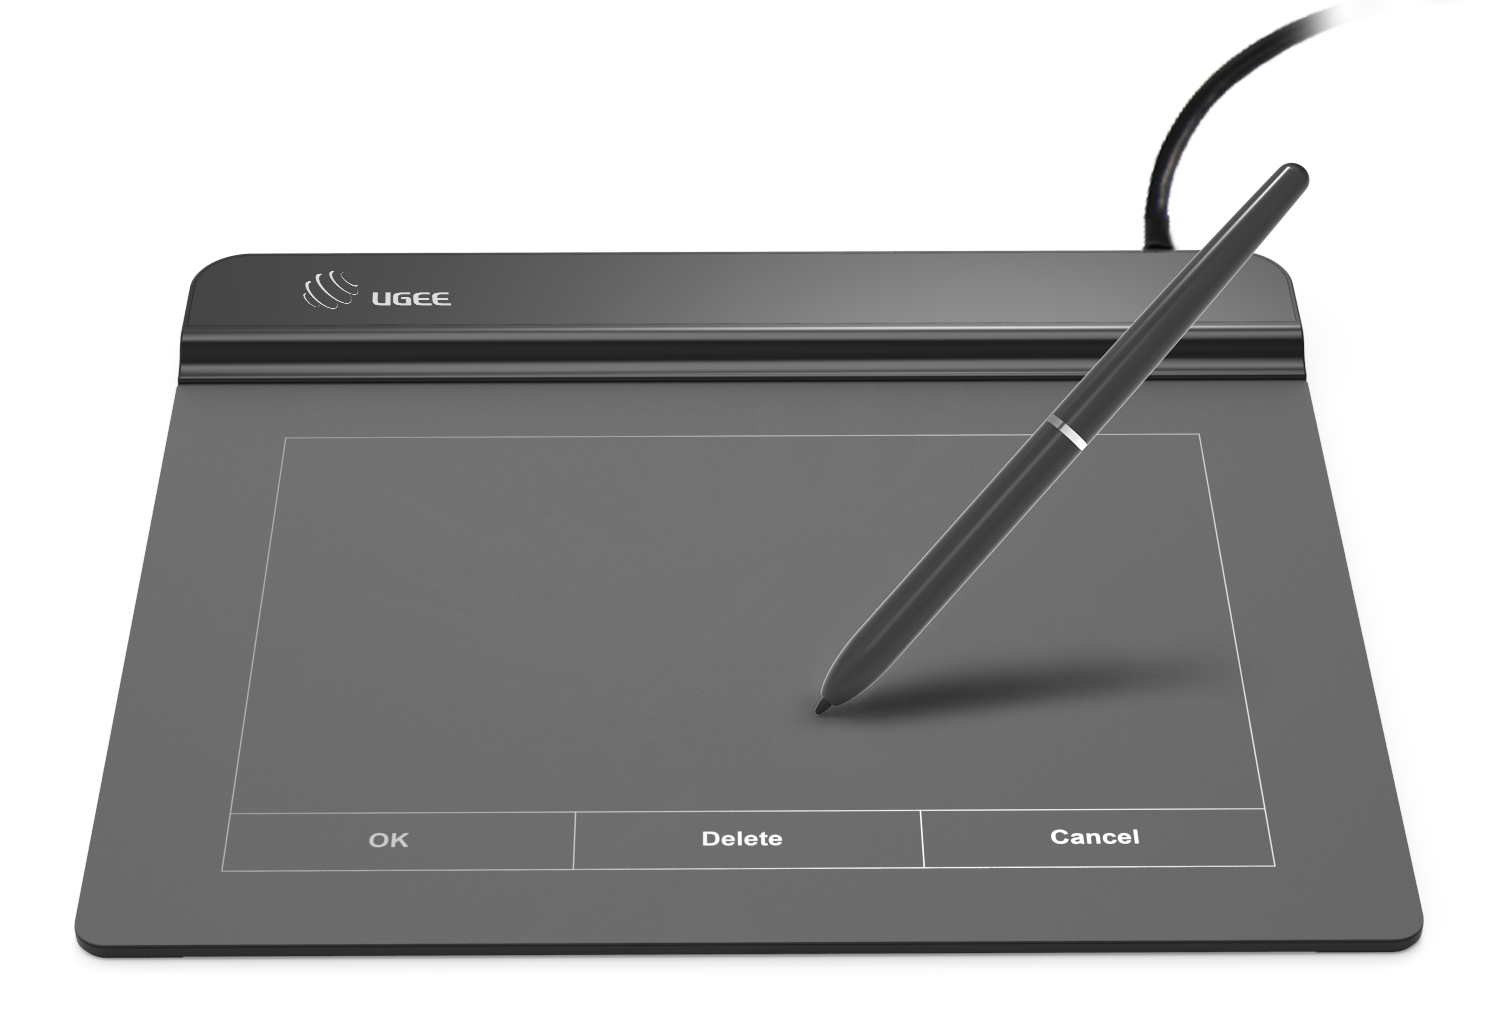 Ugee-Fingerprint Handwriting Tablet Mac Professional Ugee Company-2